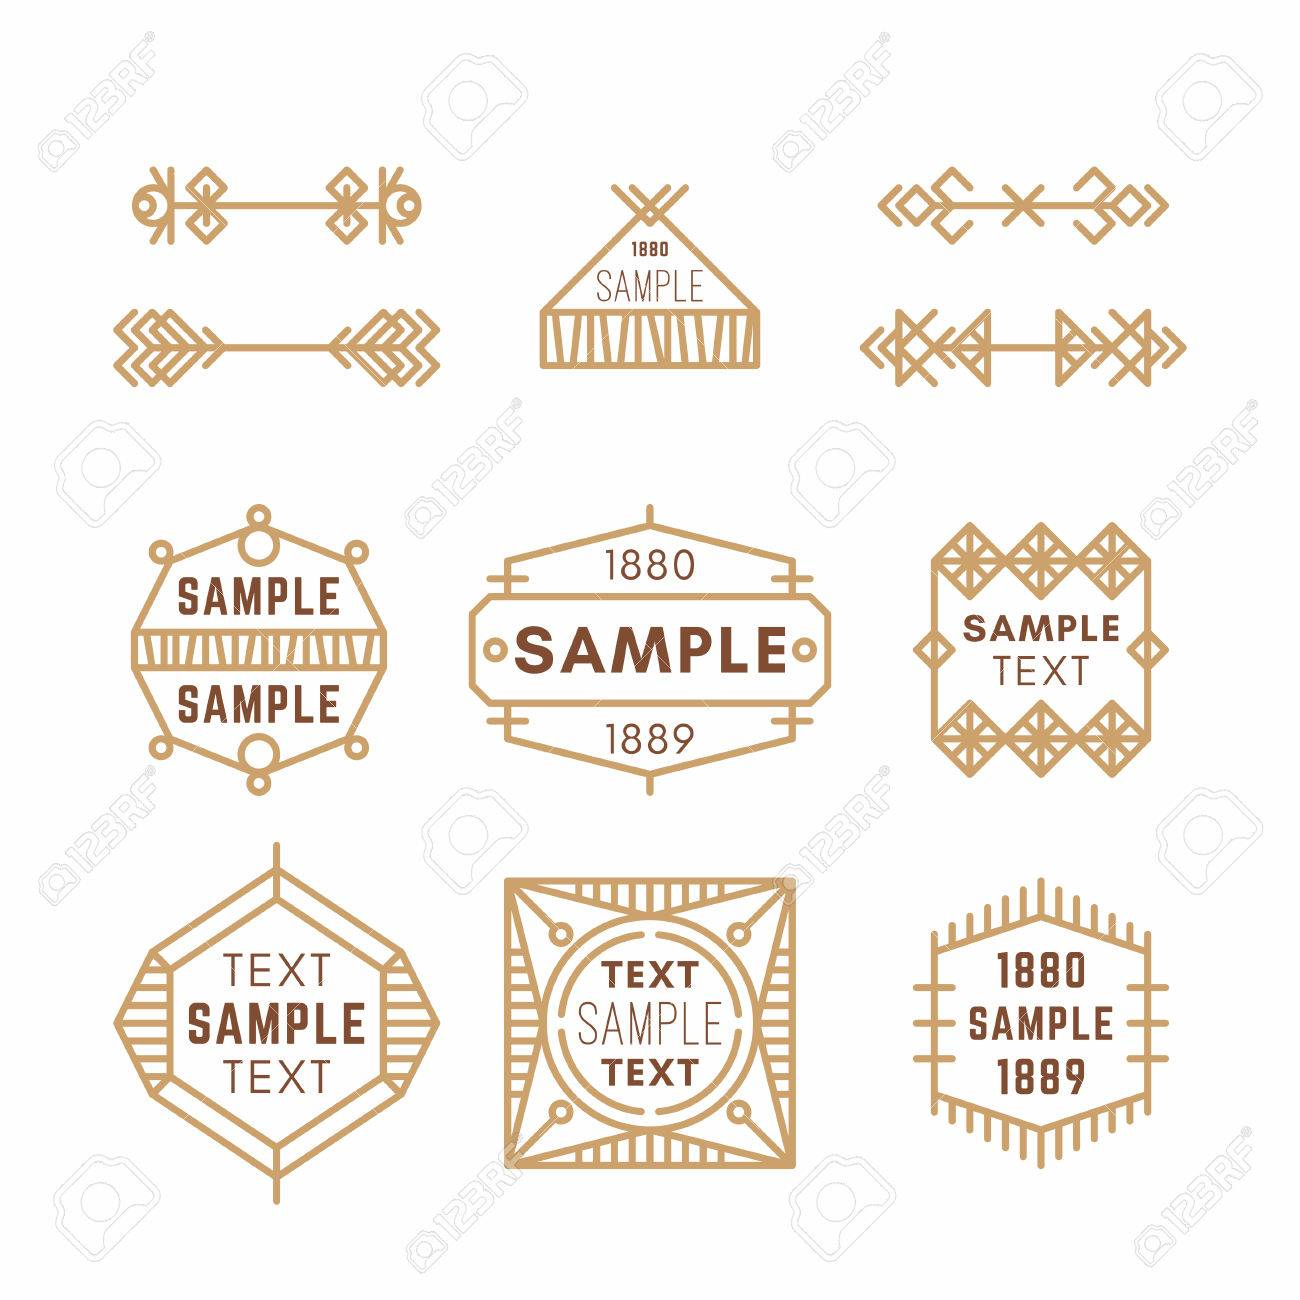 Brown Decorative Line Wiring Diagrams Electronic Circuit Board Stock Photos Image 19113403 Set Of Art Geometric Vector Frames And Borders Rh 123rf Com Yellow